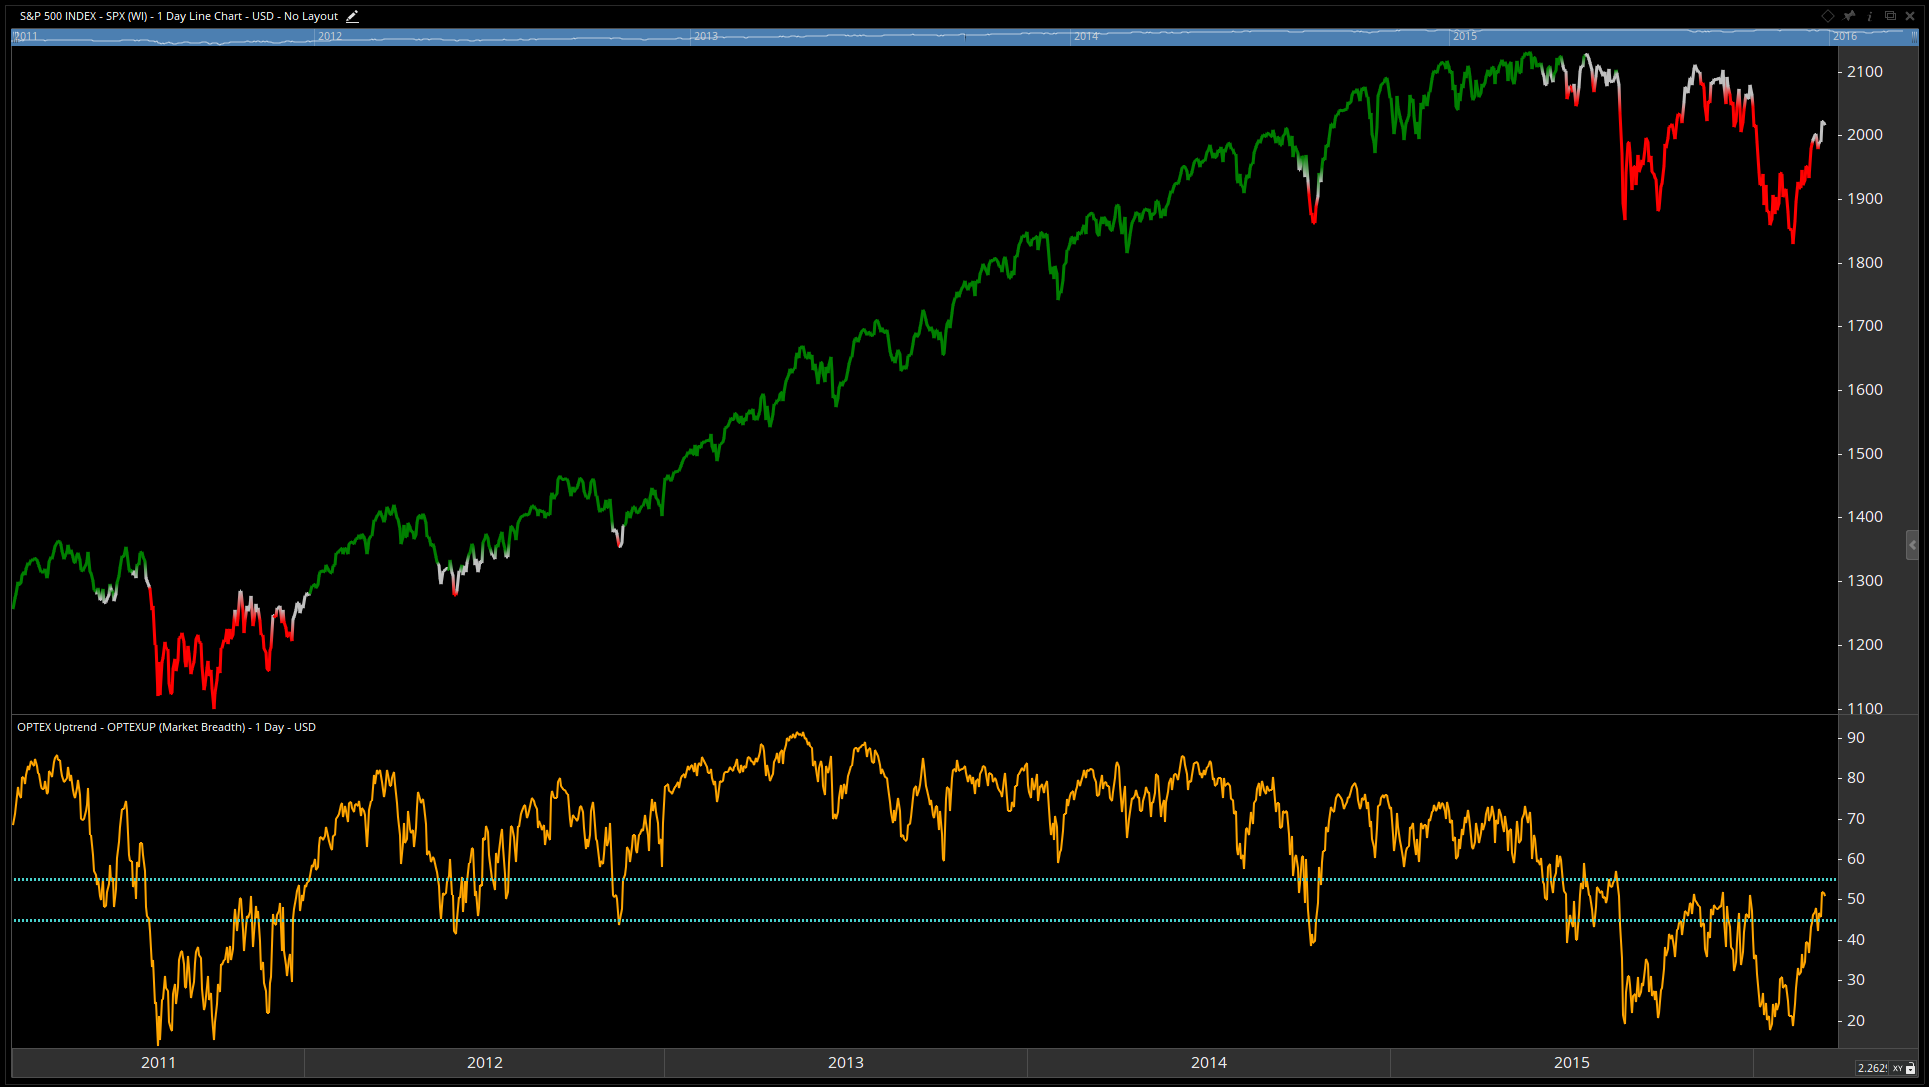 The S&P 500 Index is colored green, red and grey. The orange line in the bottom pane is the percent of stocks in an uptrend.